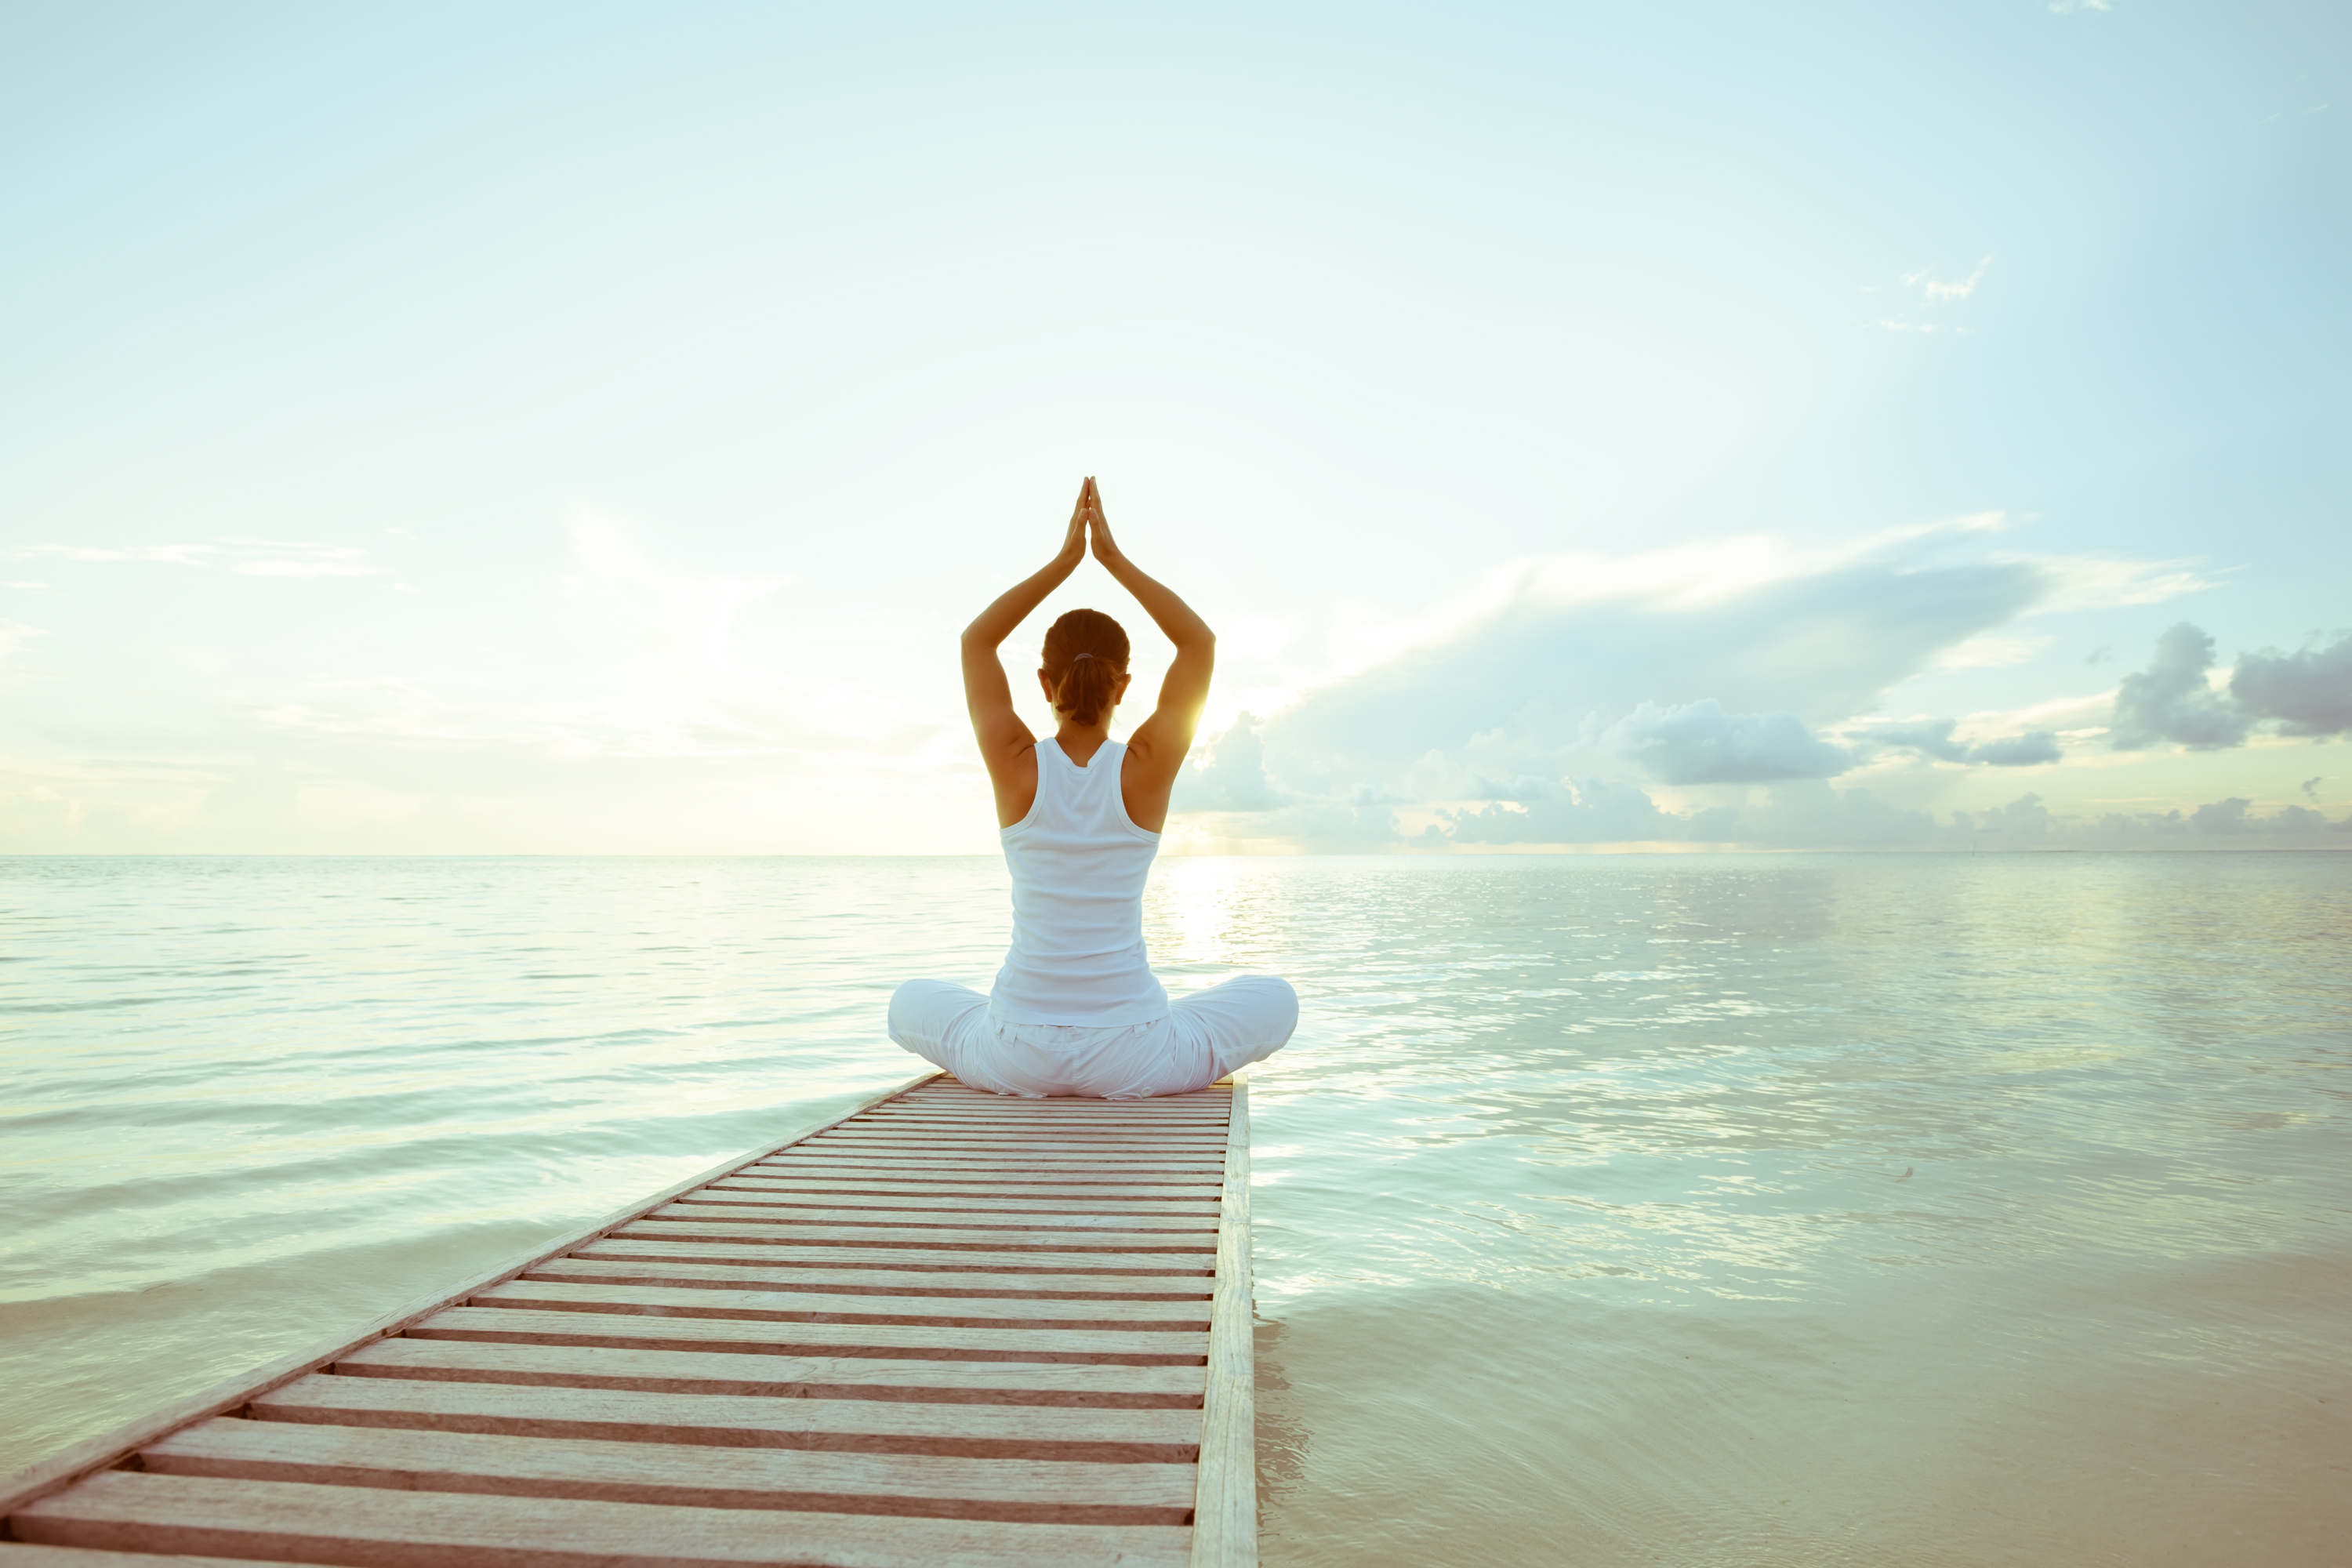 Yoga Backgrounds Posted By Samantha Peltier